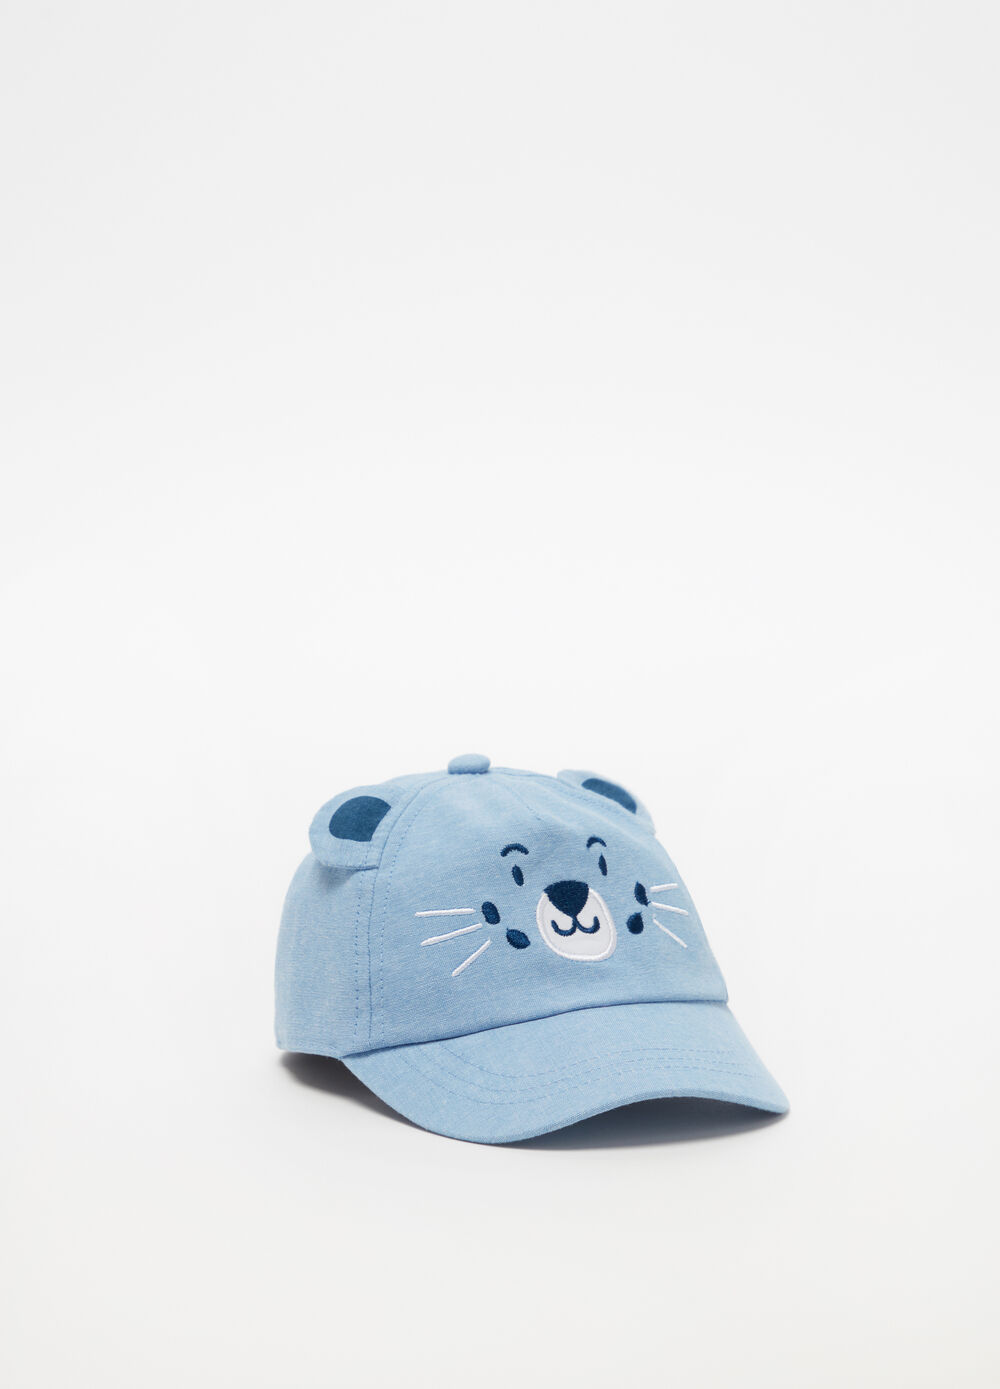 Baseball cap with teddy bear ears